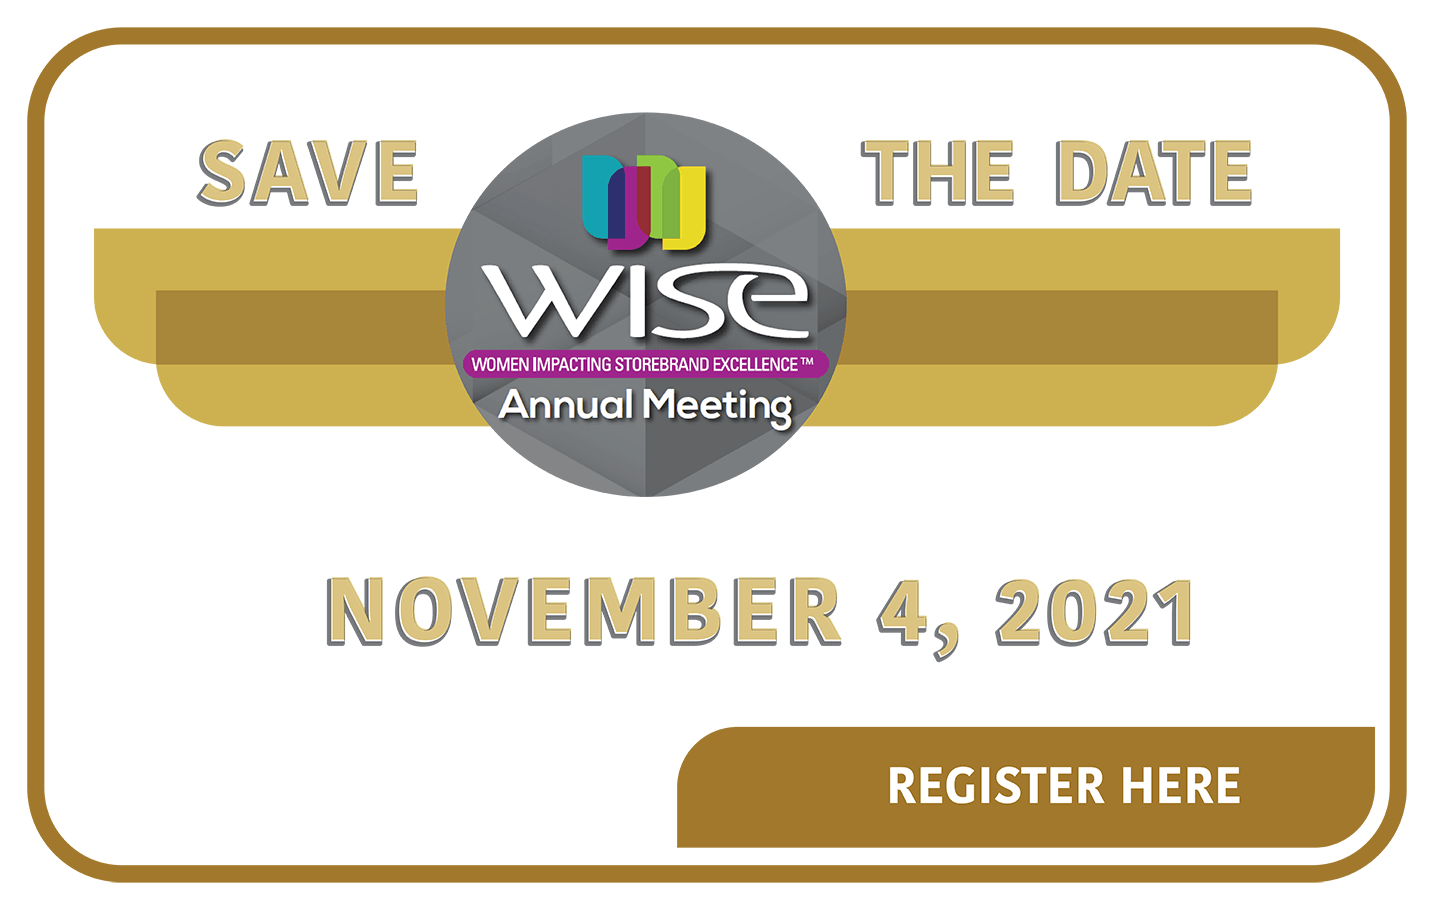 WISE-267 Web Maintenance Annual Meeting0922-03